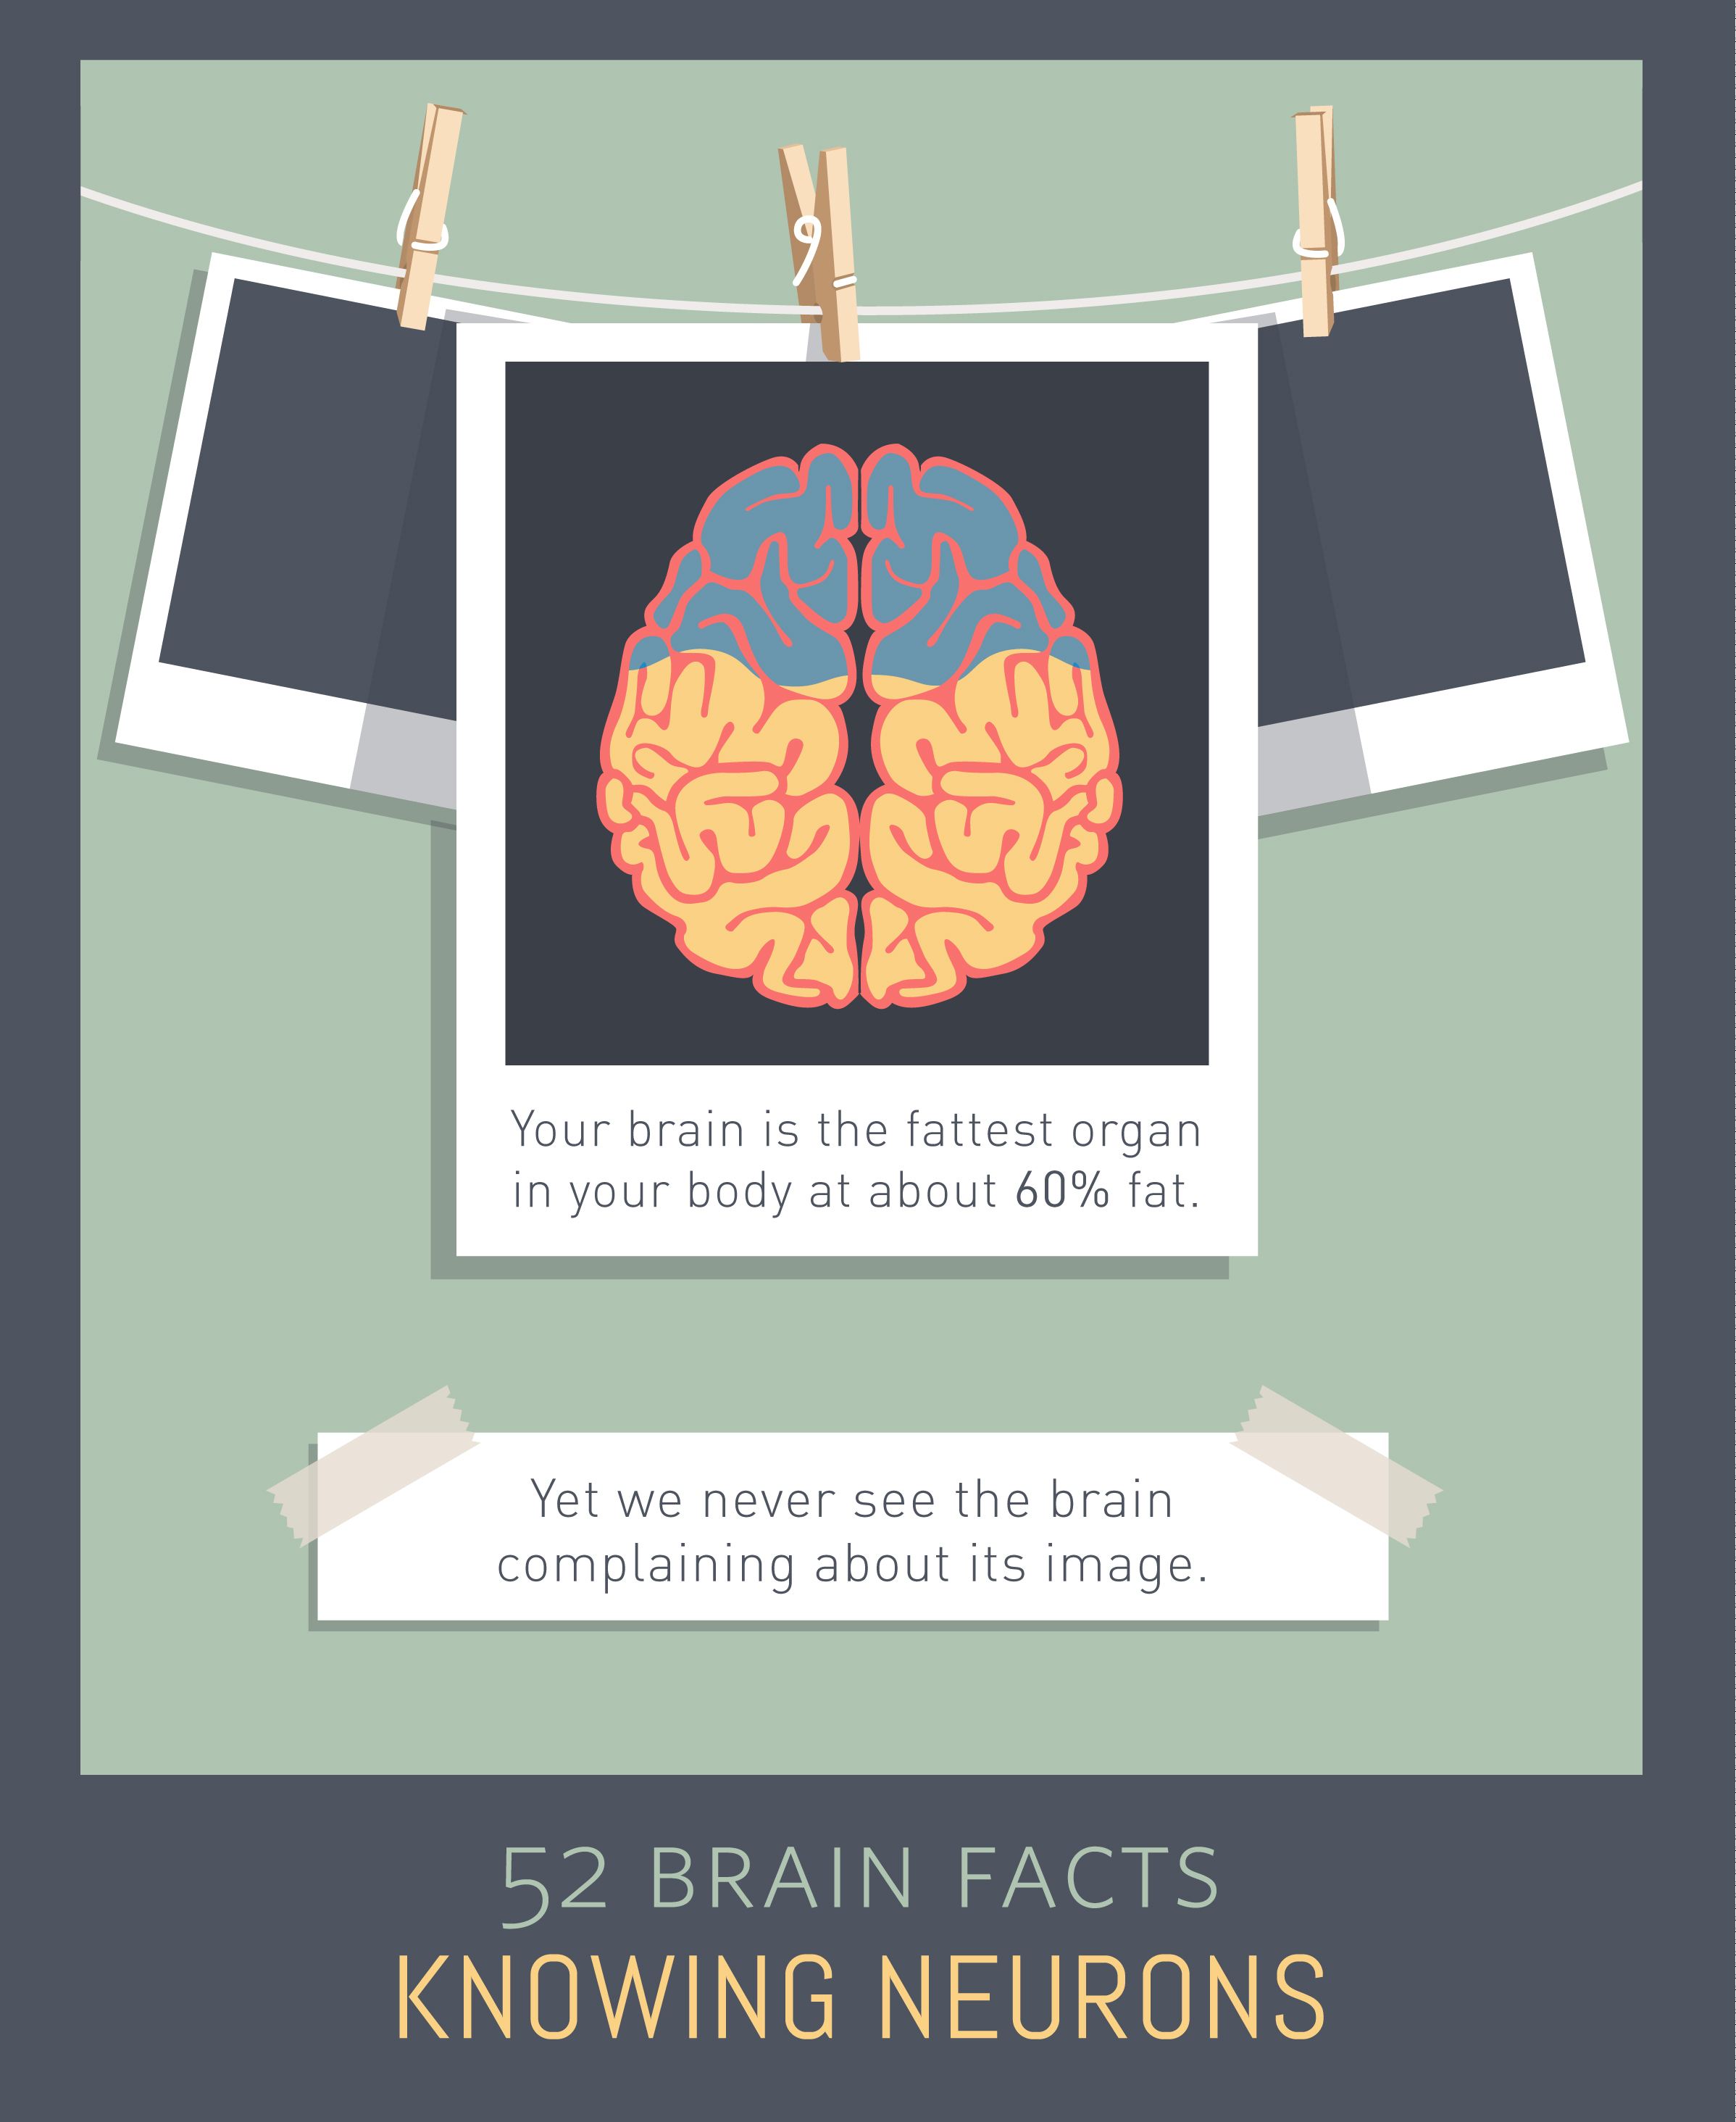 Myth or Fact? The brain is the fattest organ in the body.